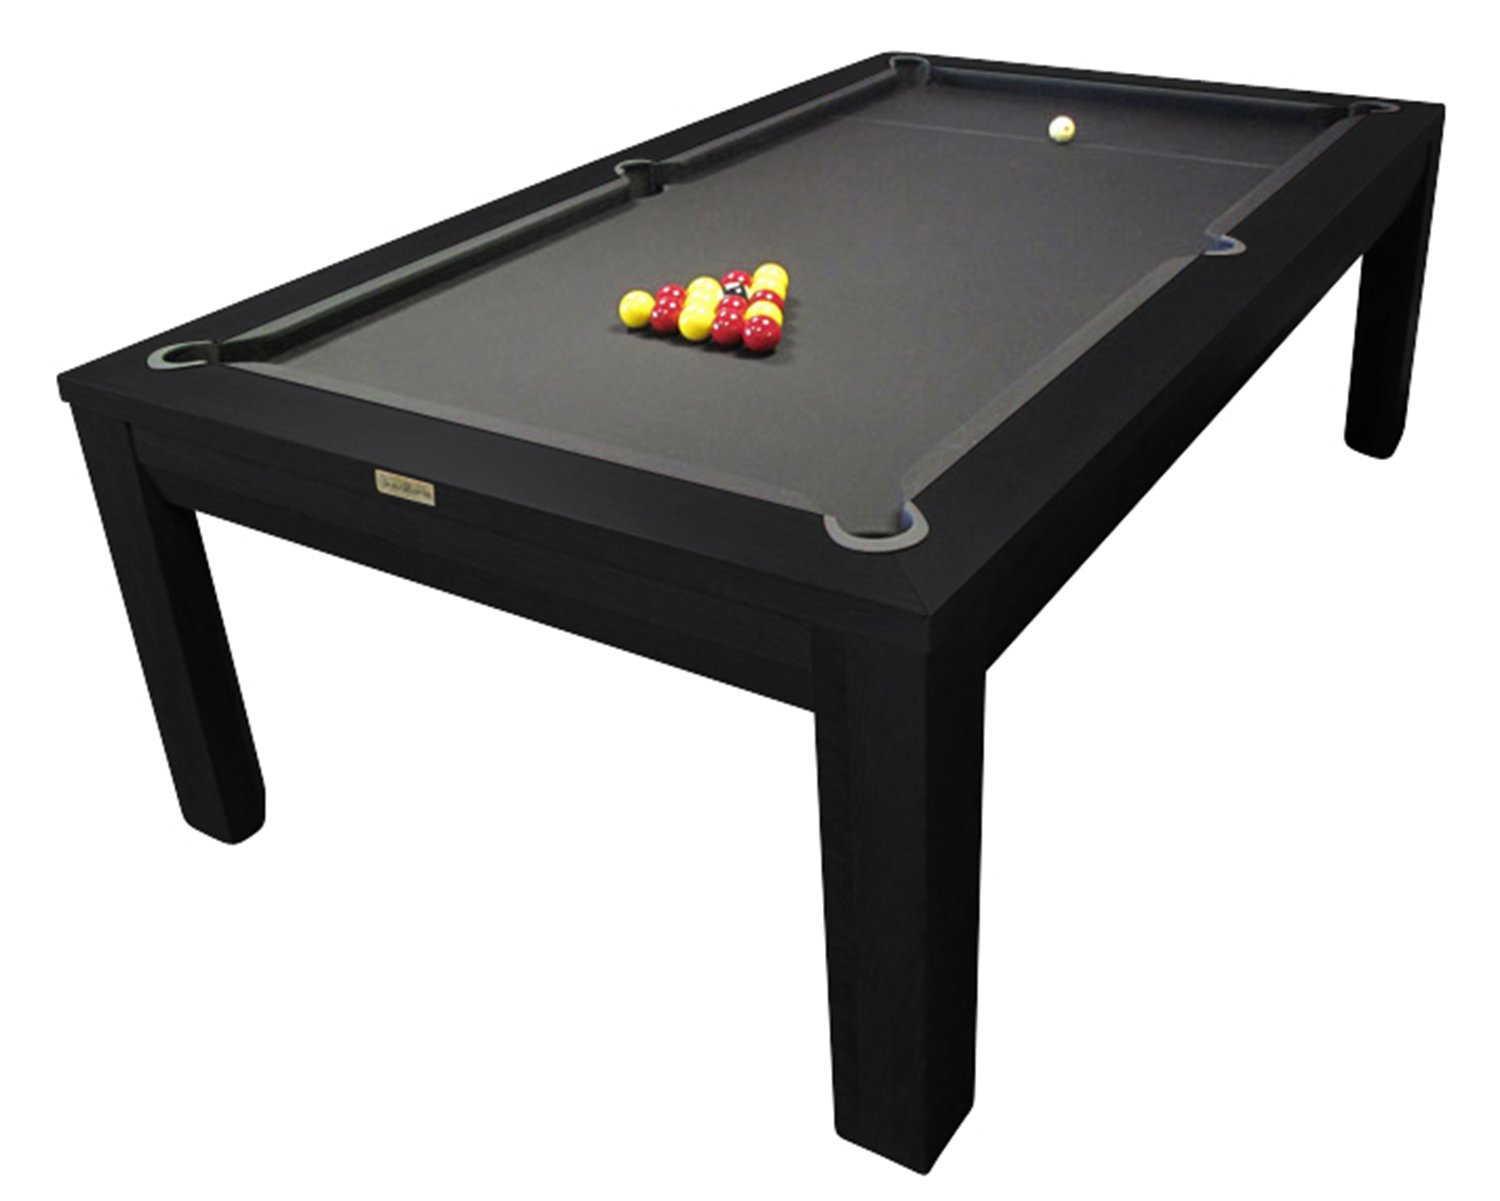 Pool Table Chairs Pool Table Dining Room Table Combo  : 4864 Heimo in a black finish from joomlaink.com size 1500 x 1201 jpeg 62kB